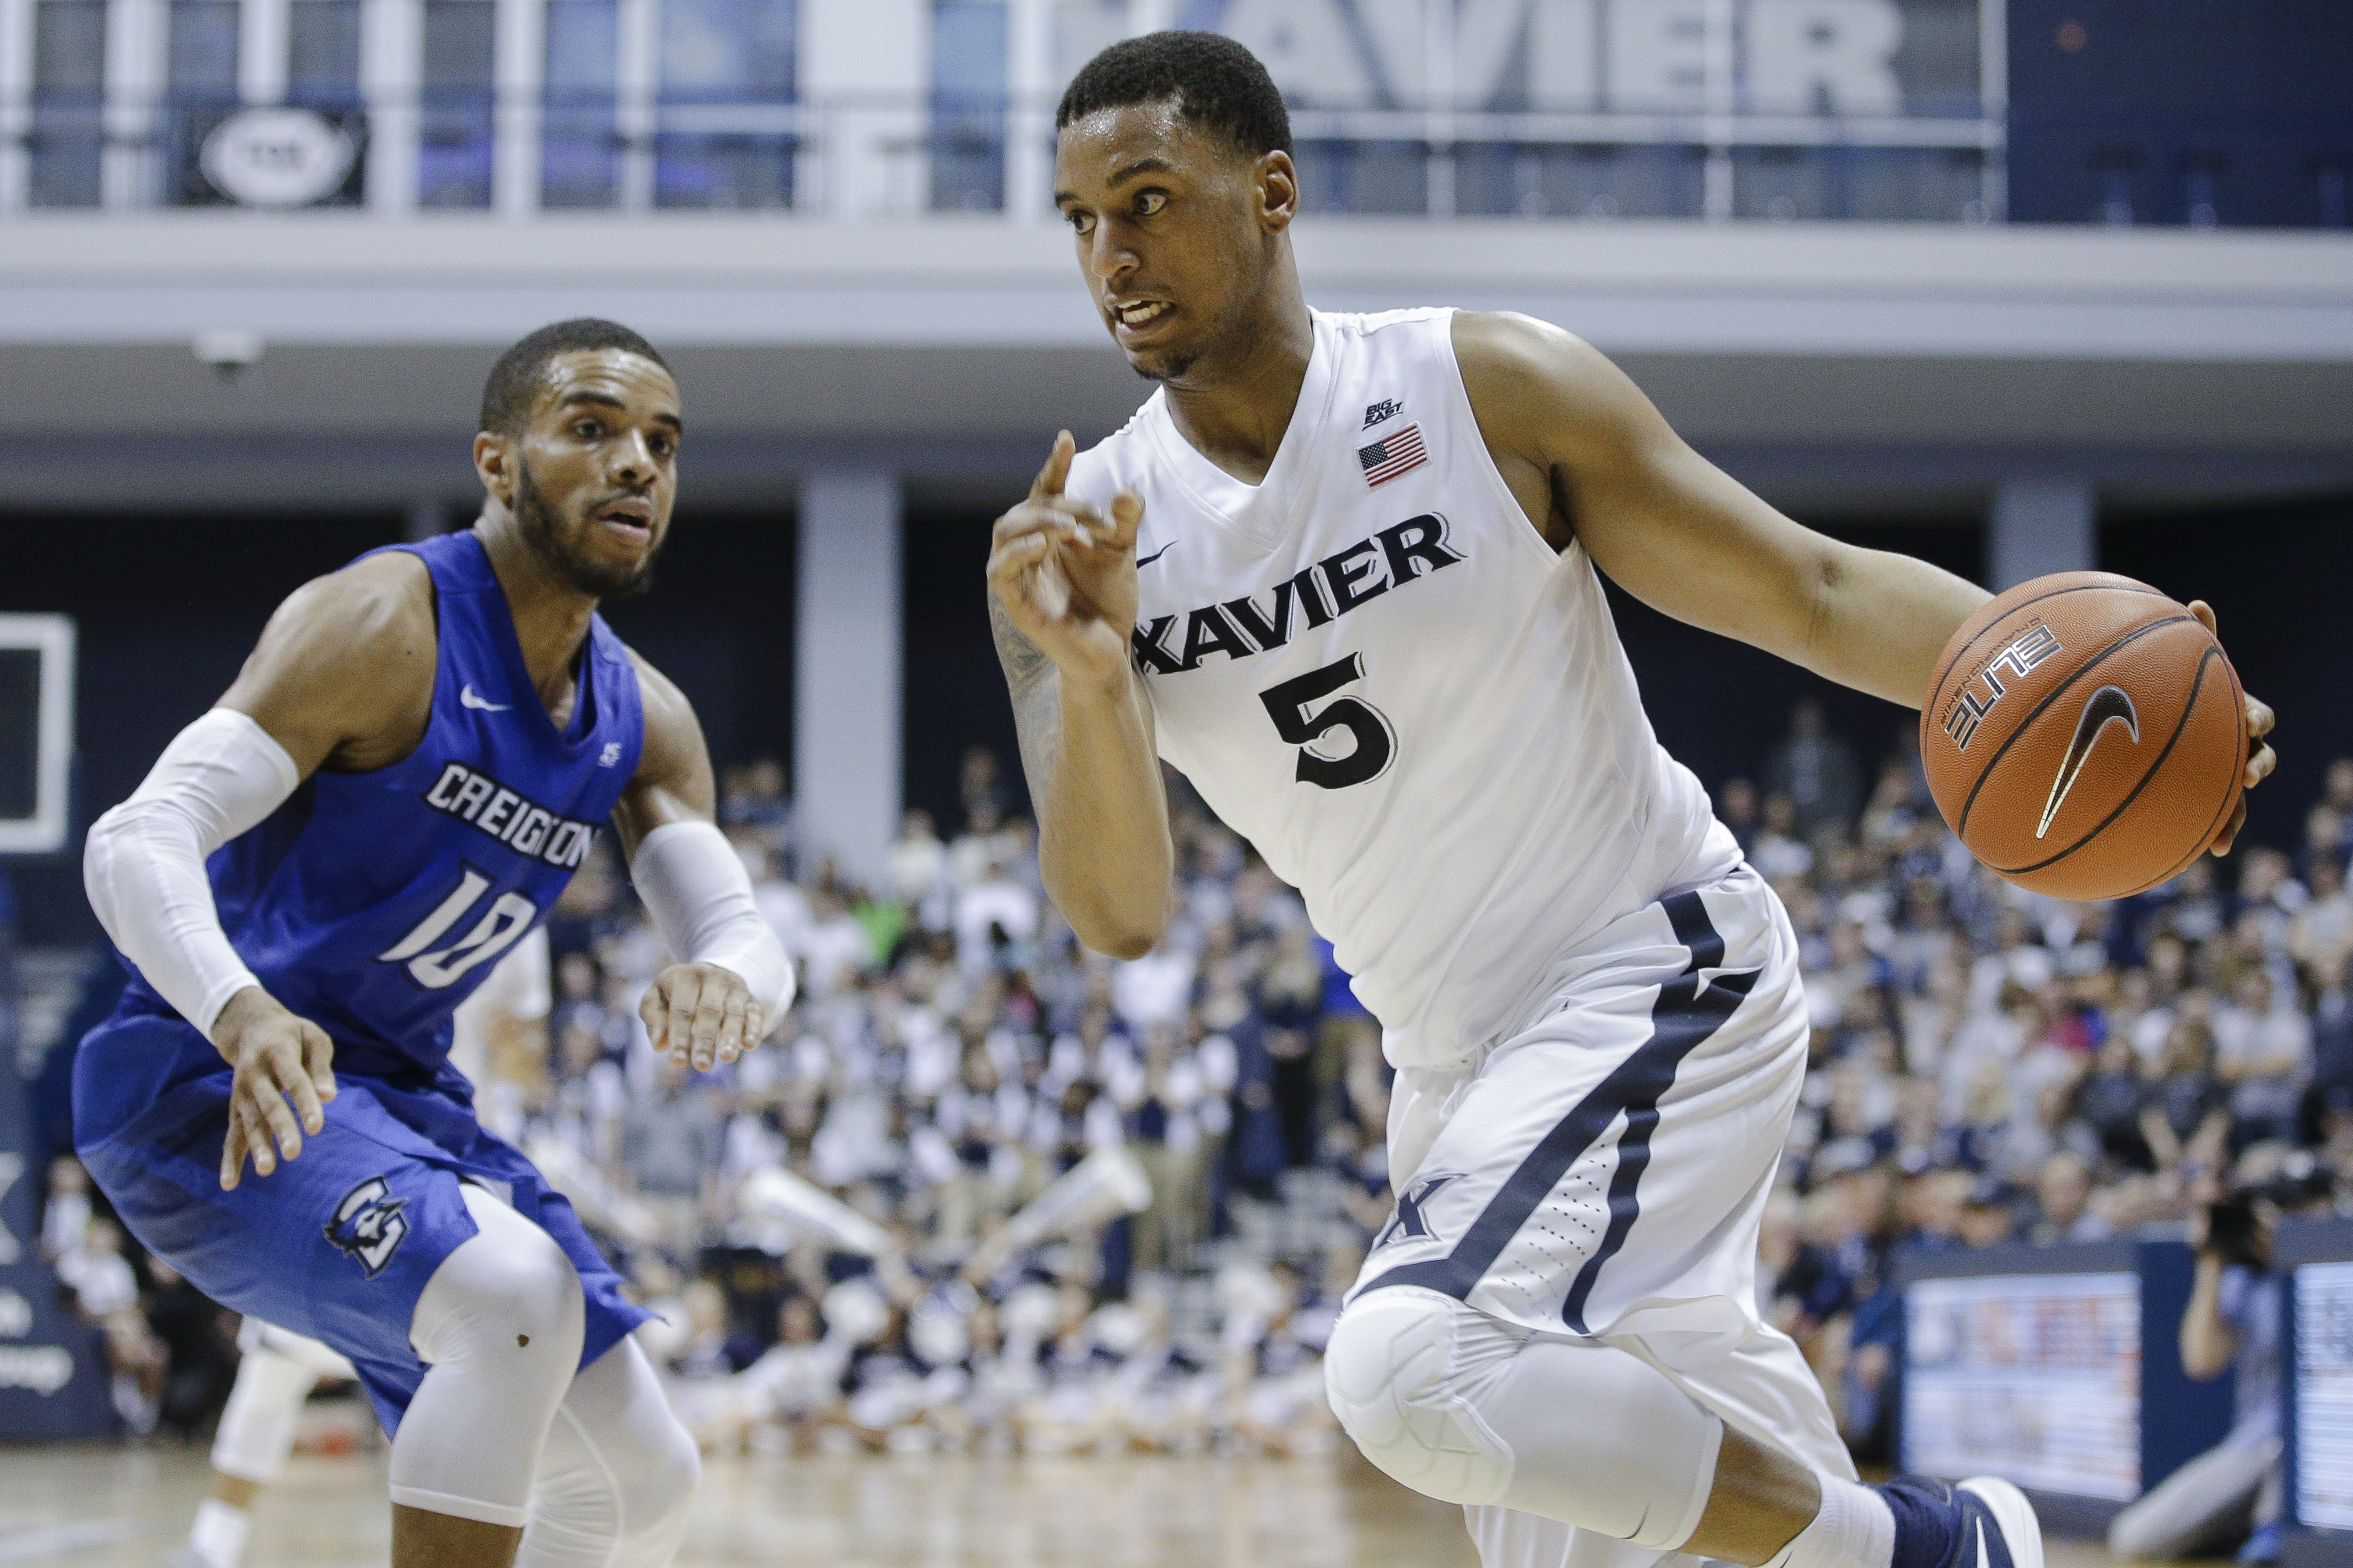 Xavier's Trevon Bluiett (5) drives past Creighton's Maurice Watson Jr. (10) during the second half of an NCAA college basketball game, Saturday, March 5, 2016, in Cincinnati. Xavier won 98-93. (AP Photo/John Minchillo)